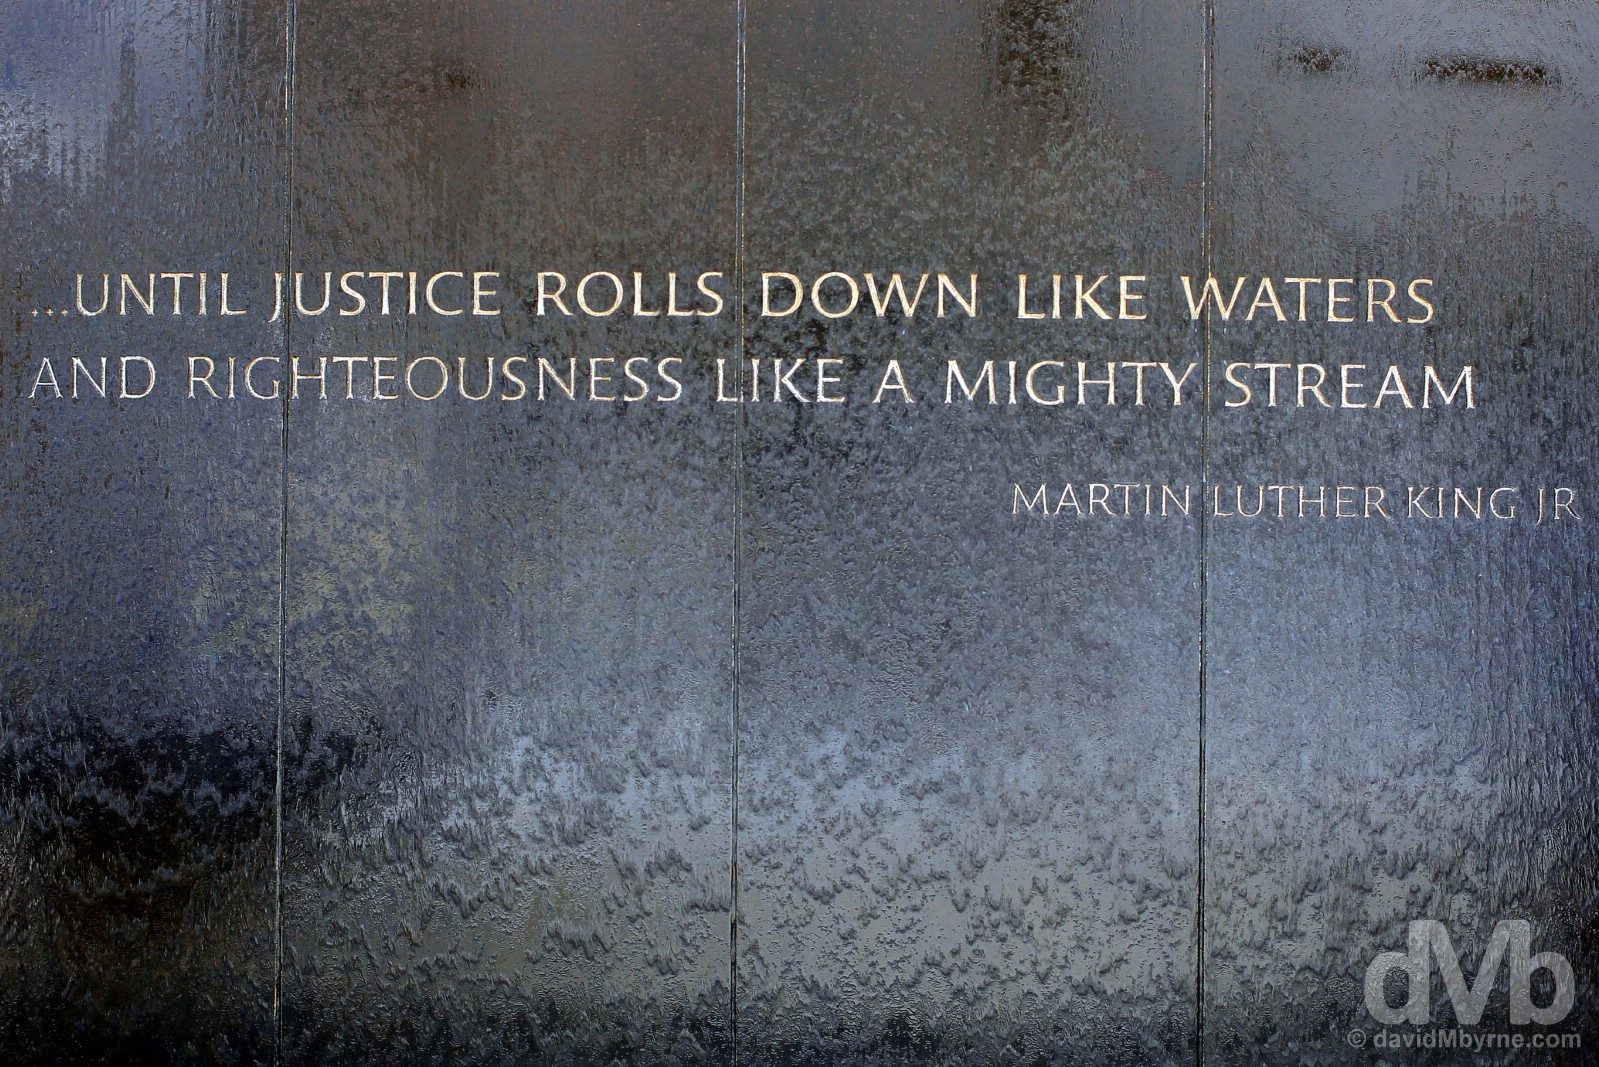 A Martin Luther King Jr. quote outside the Civil Rights Memorial Center on Washington Avenue in Montgomery, Alabama, USA. September 21, 2016.